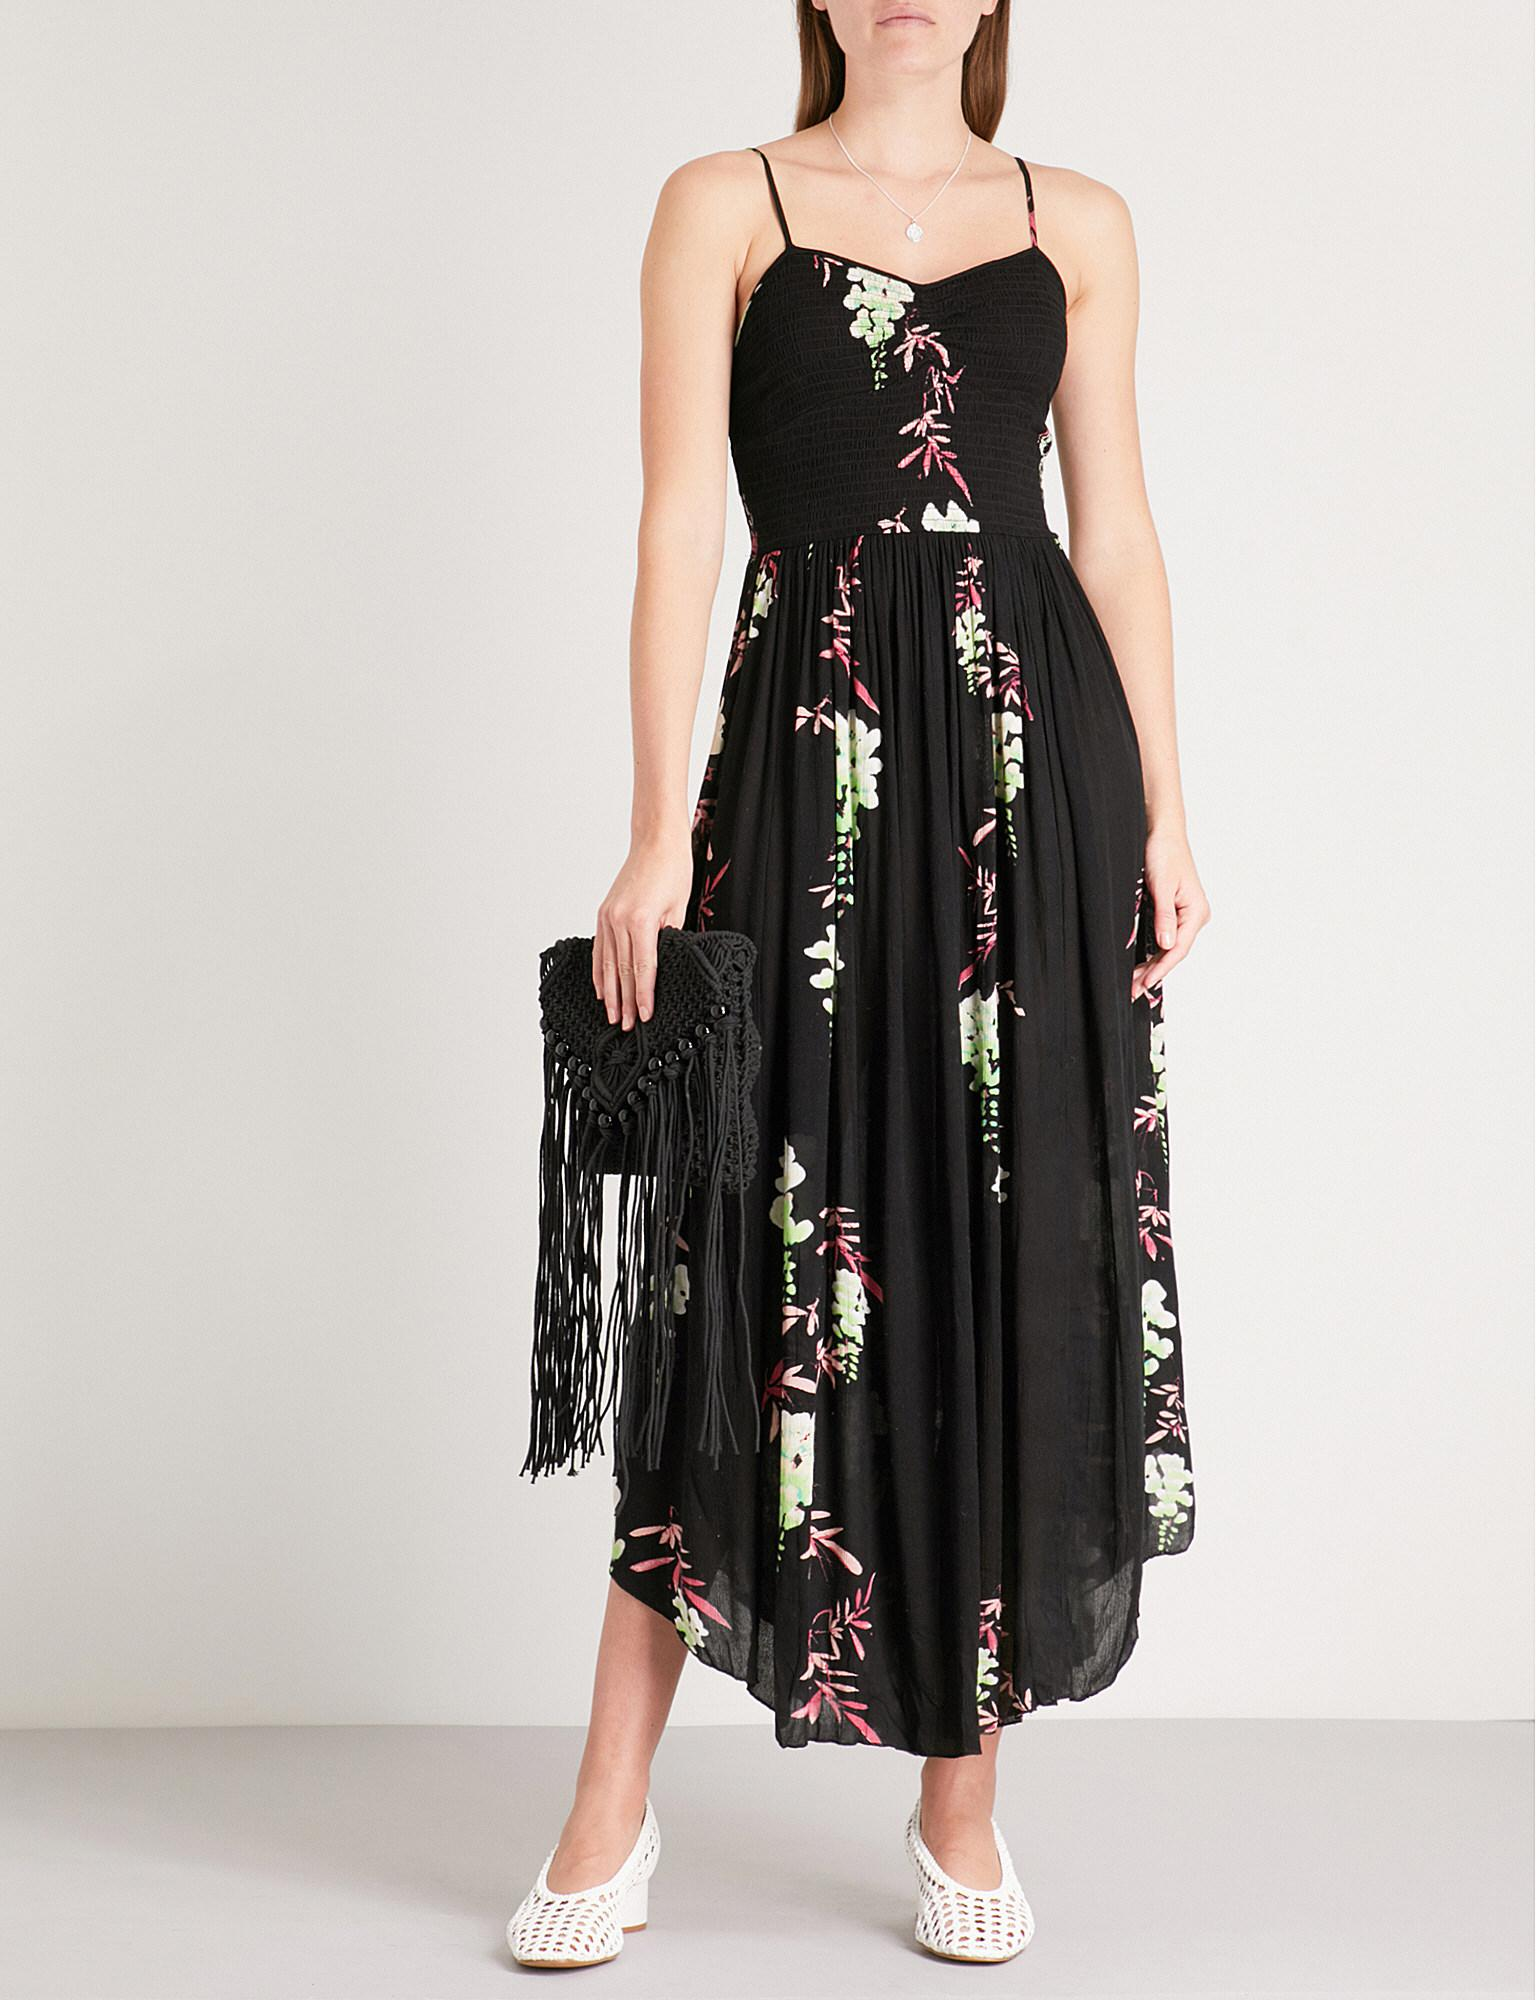 a445b0e327b3c Free People Beau Floral-print Woven Midi Dress in Black - Lyst